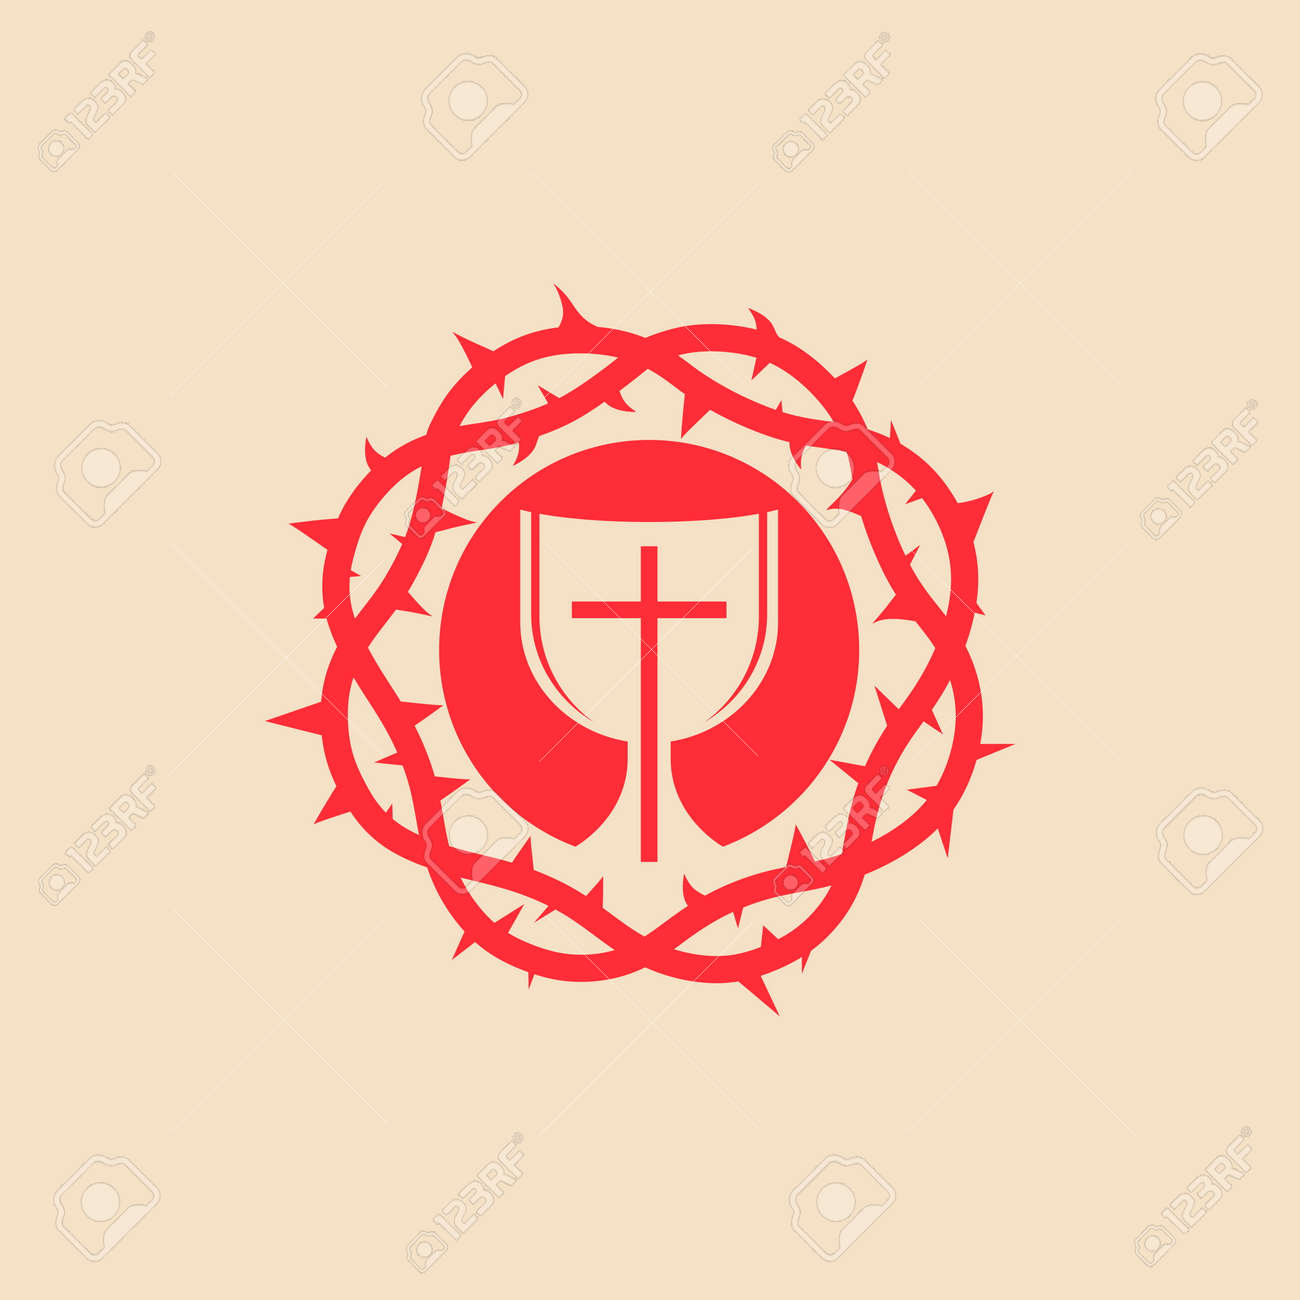 Communion Crown Of Thorns Cross Red Icon Royalty Free Cliparts